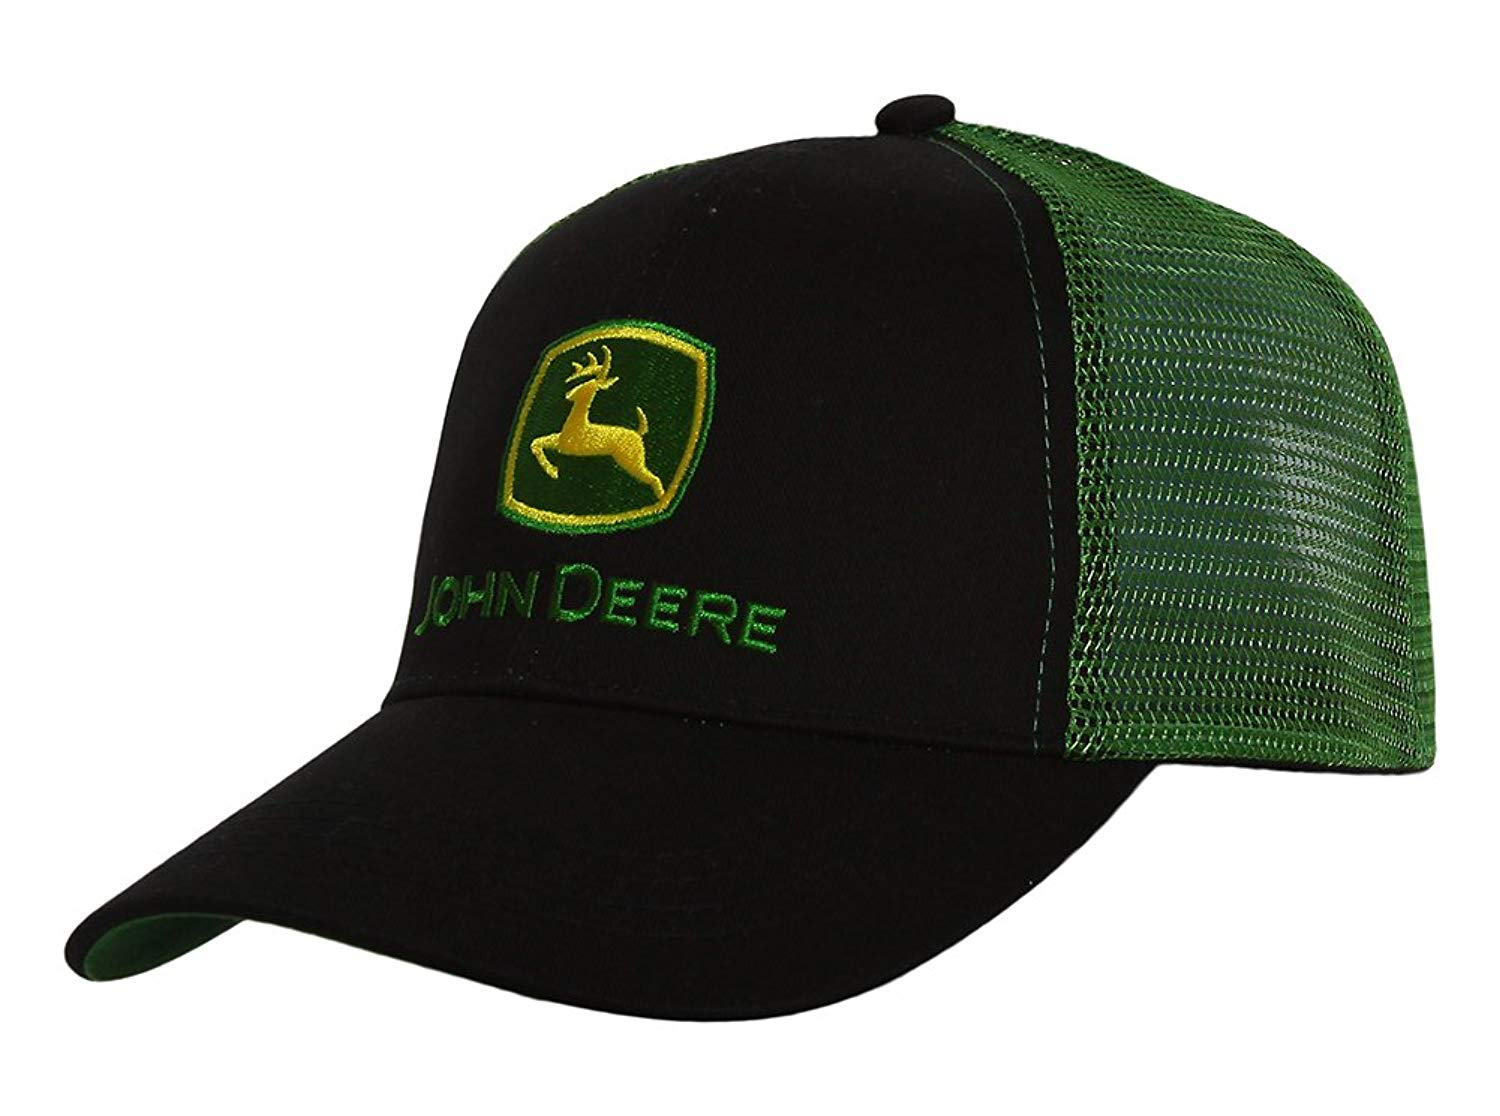 John Deere Adjustable Trucker Hat - Green/Black